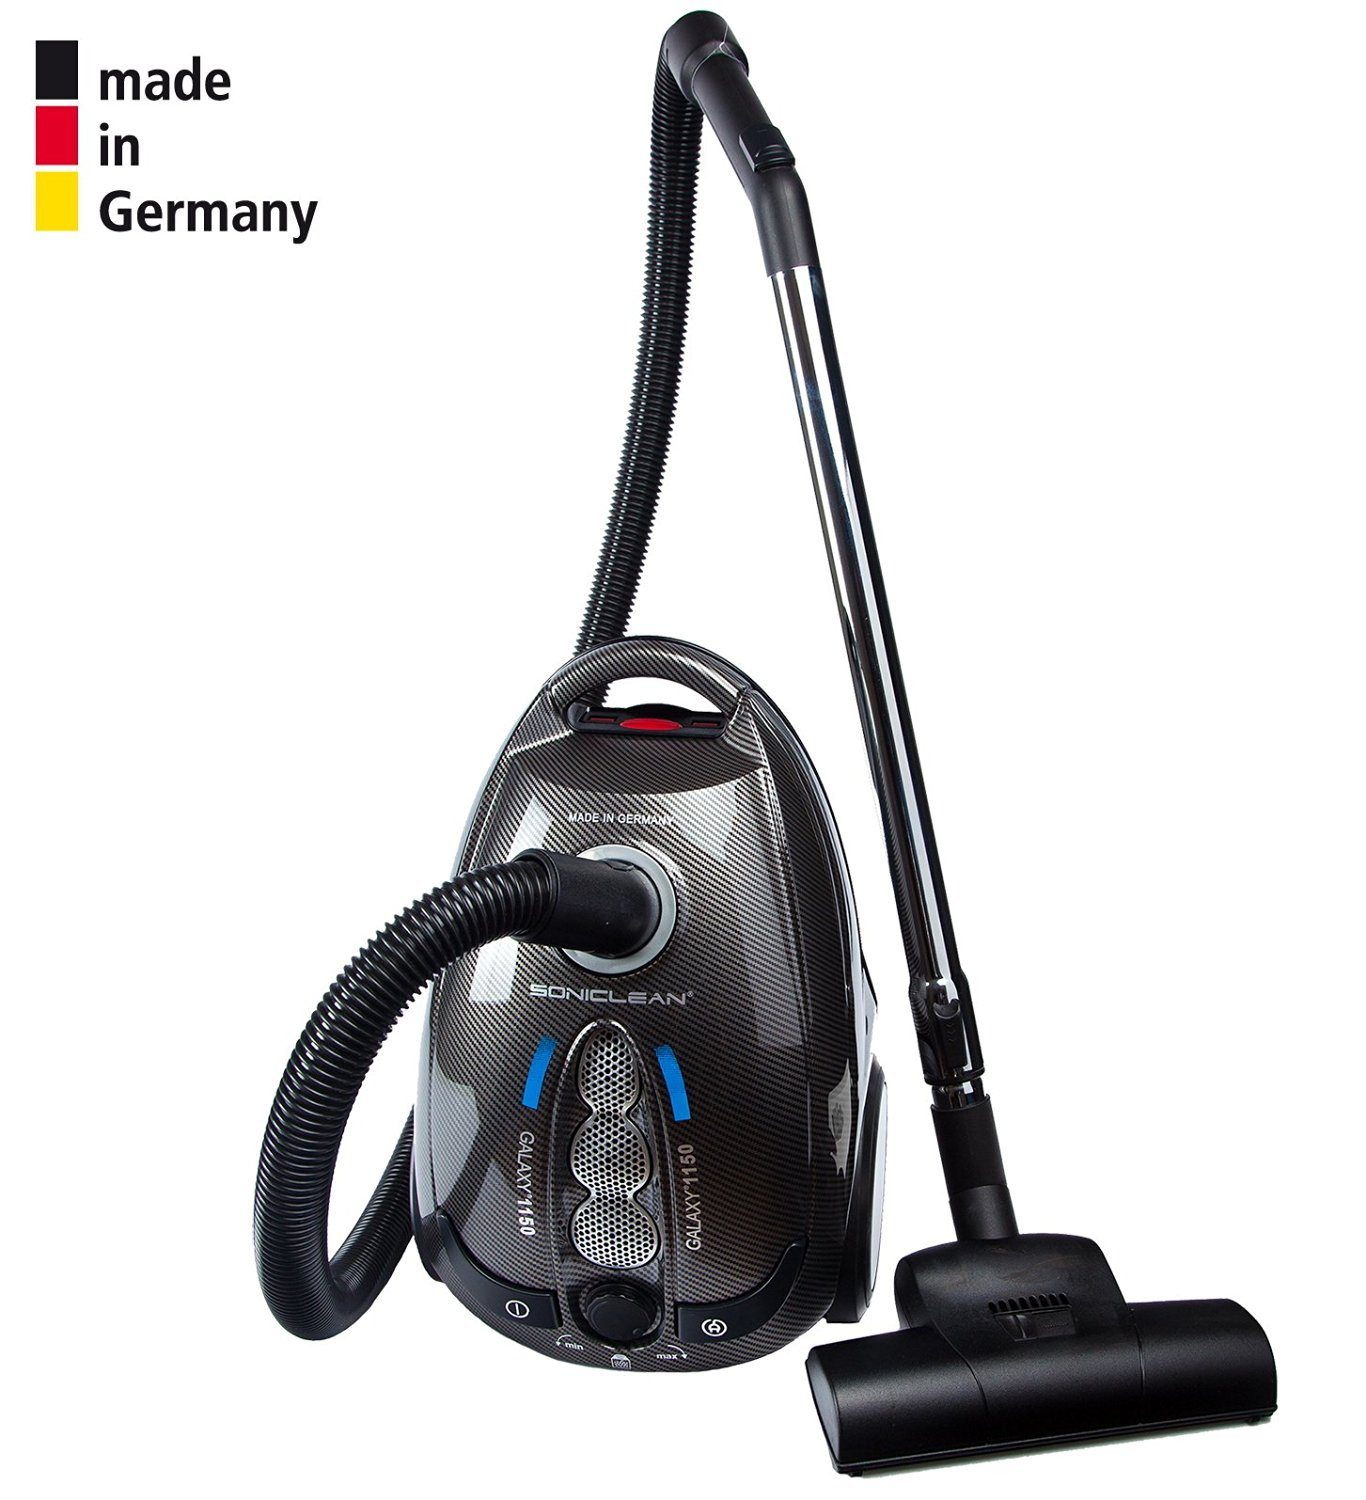 Review Soniclean Galaxy 1150 Canister Vacuum Cleaner